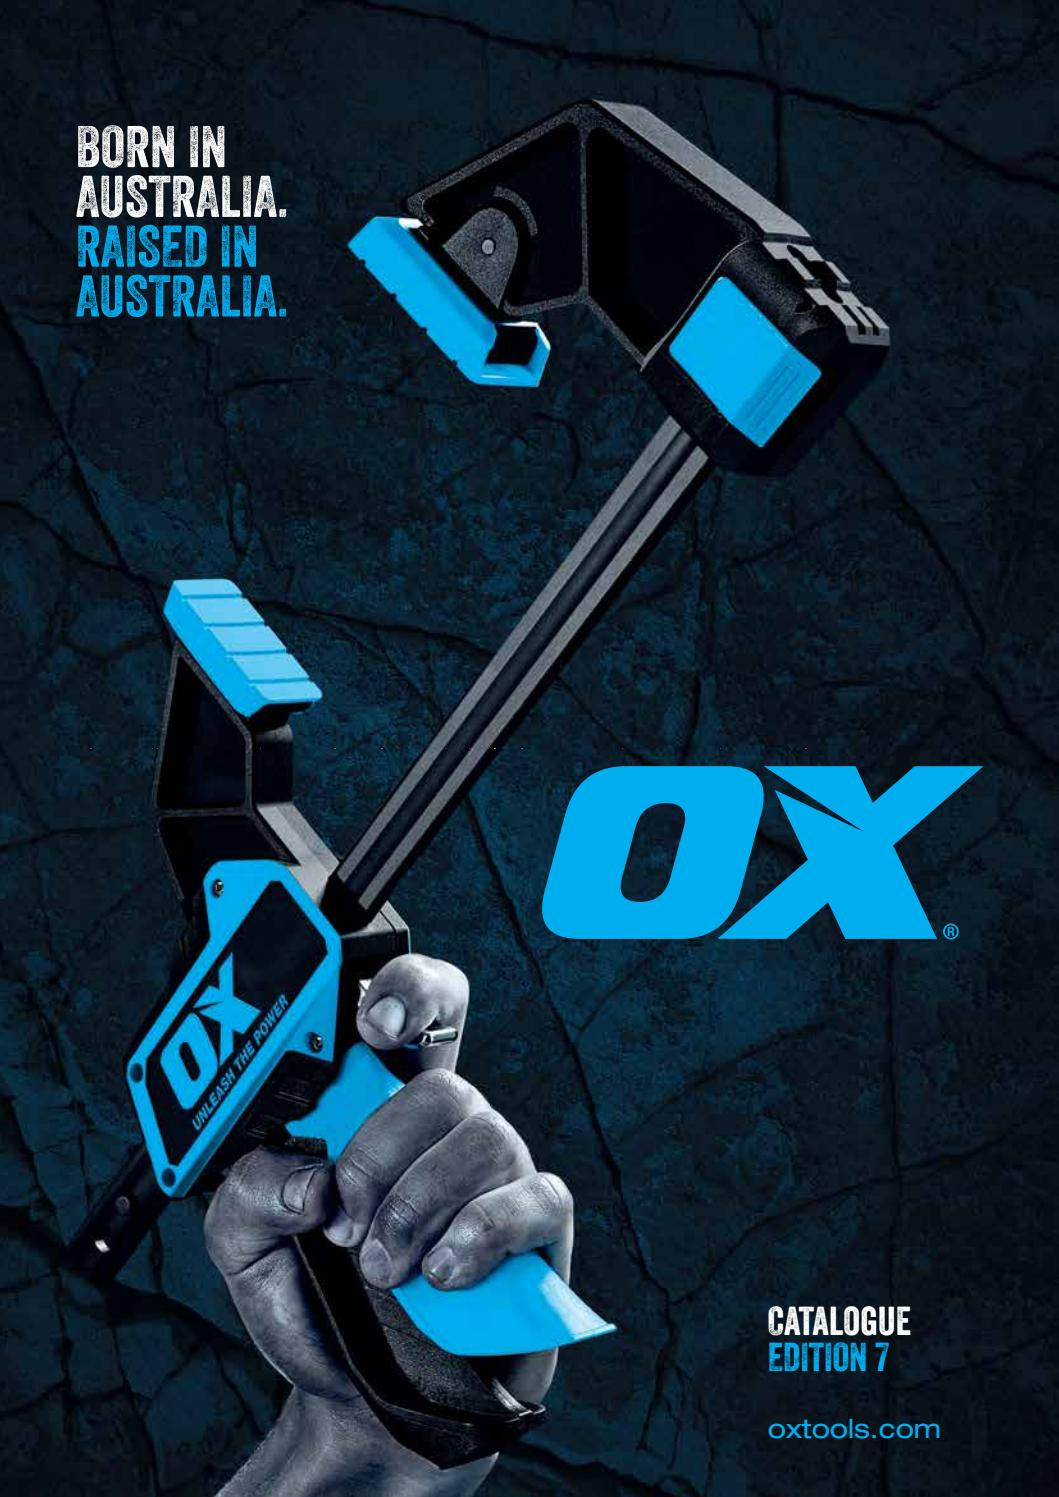 7-Inch//180 mm Multi-colour OX Tools OX-P011407 Hand Tool